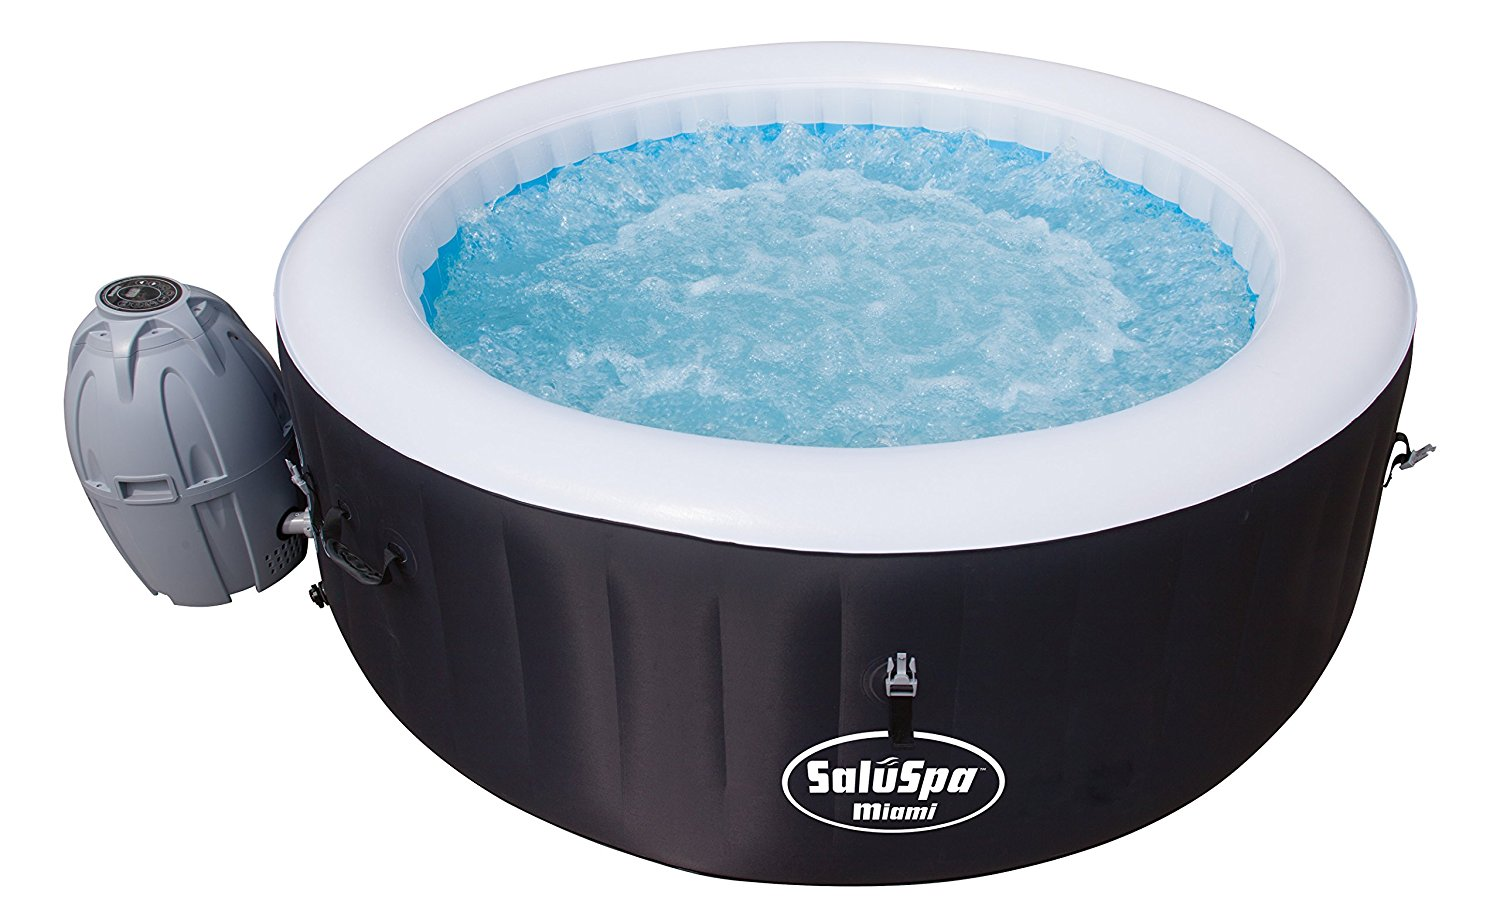 Comfortable Saluspa Miami Airjet Inflatable Hot Tub Review Laze Up ...